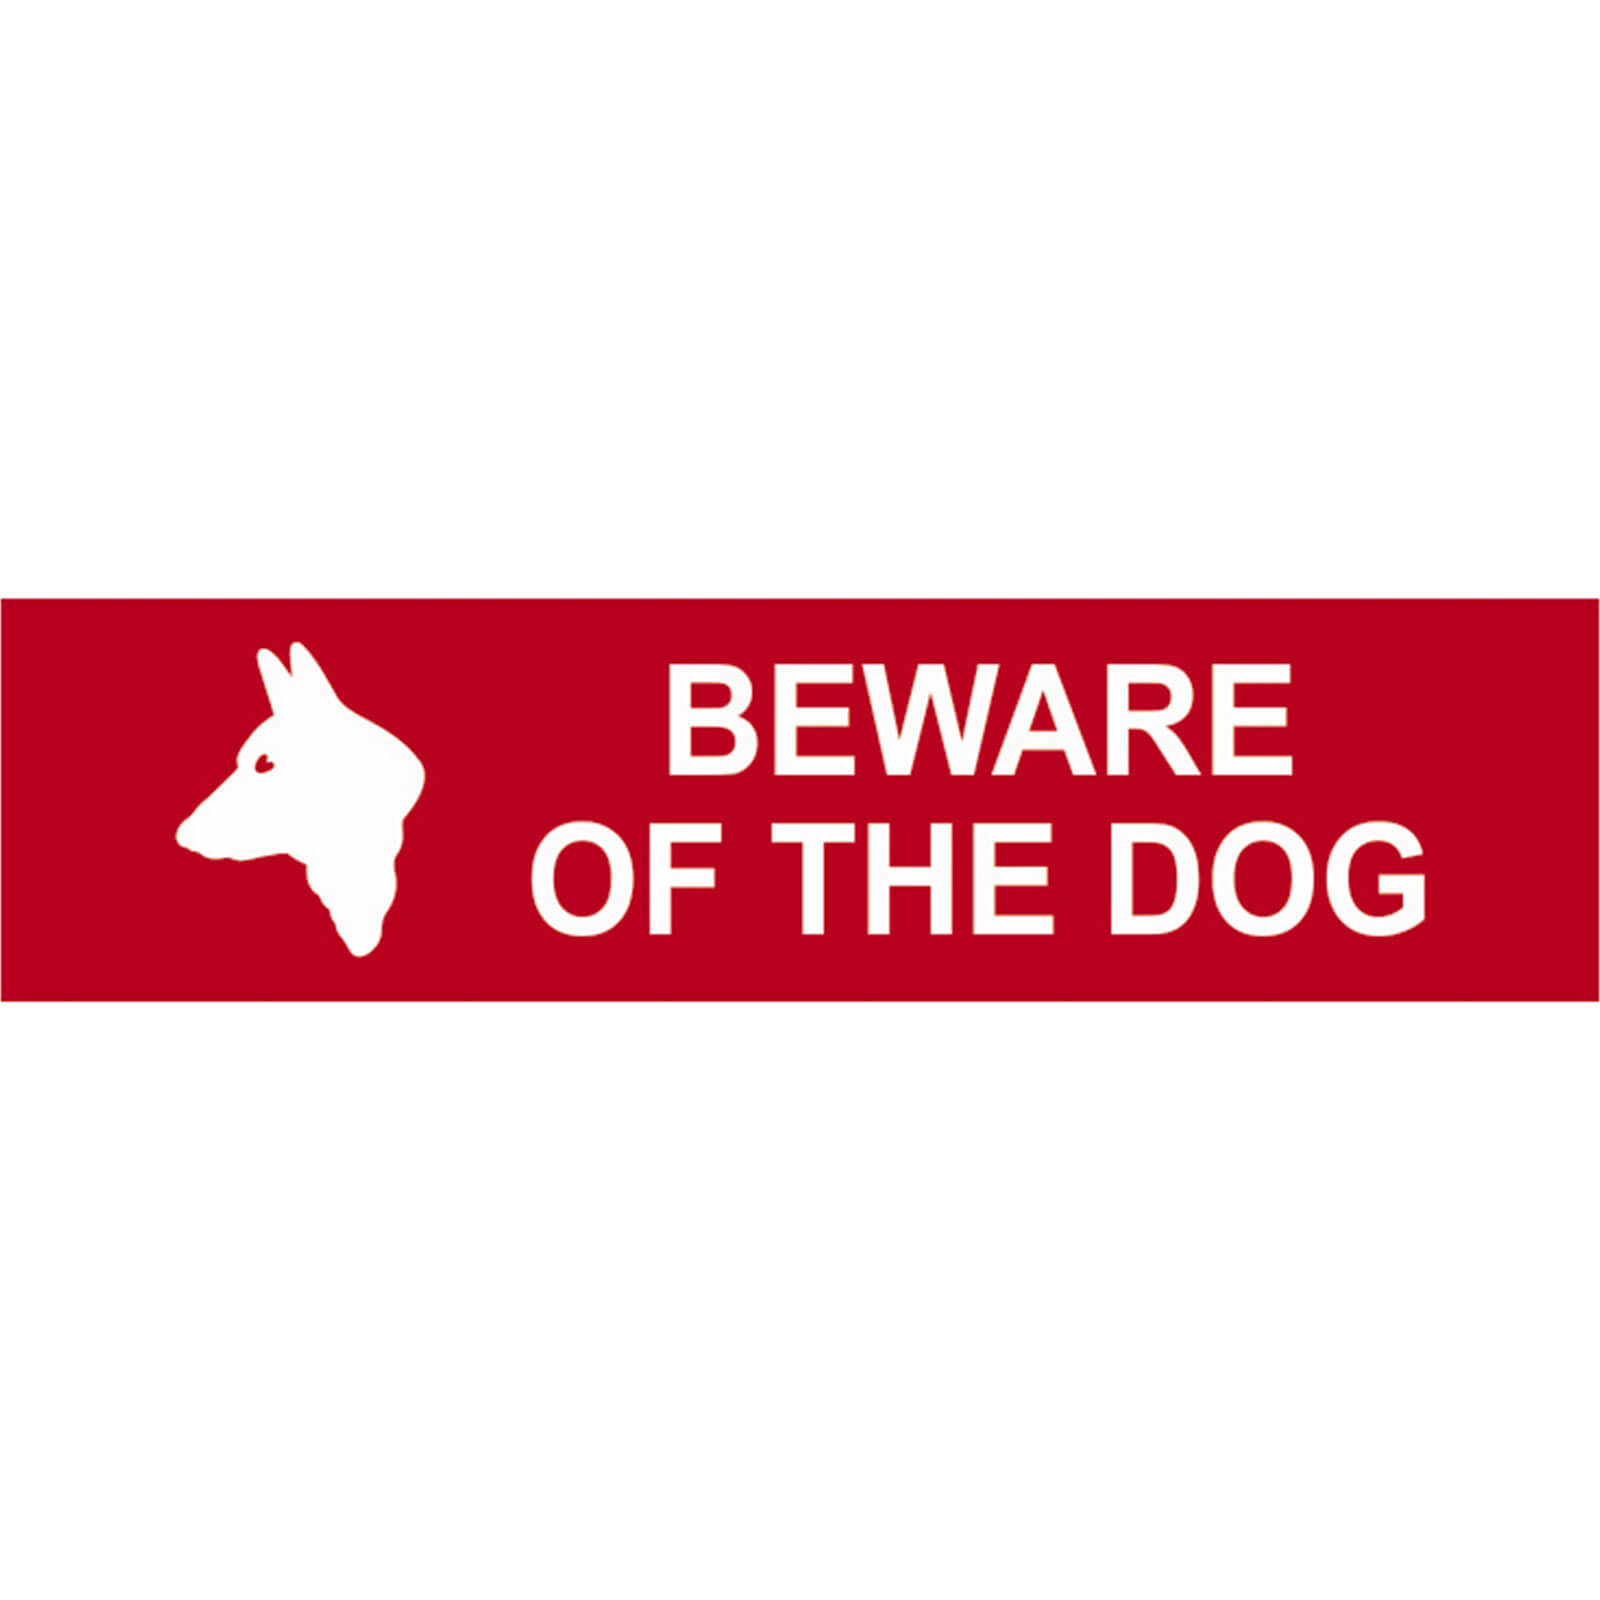 Tooled Up/Safety & Workwear/Safety/Scan 200 x 50mm PVC Sign - Beware Of The Dog